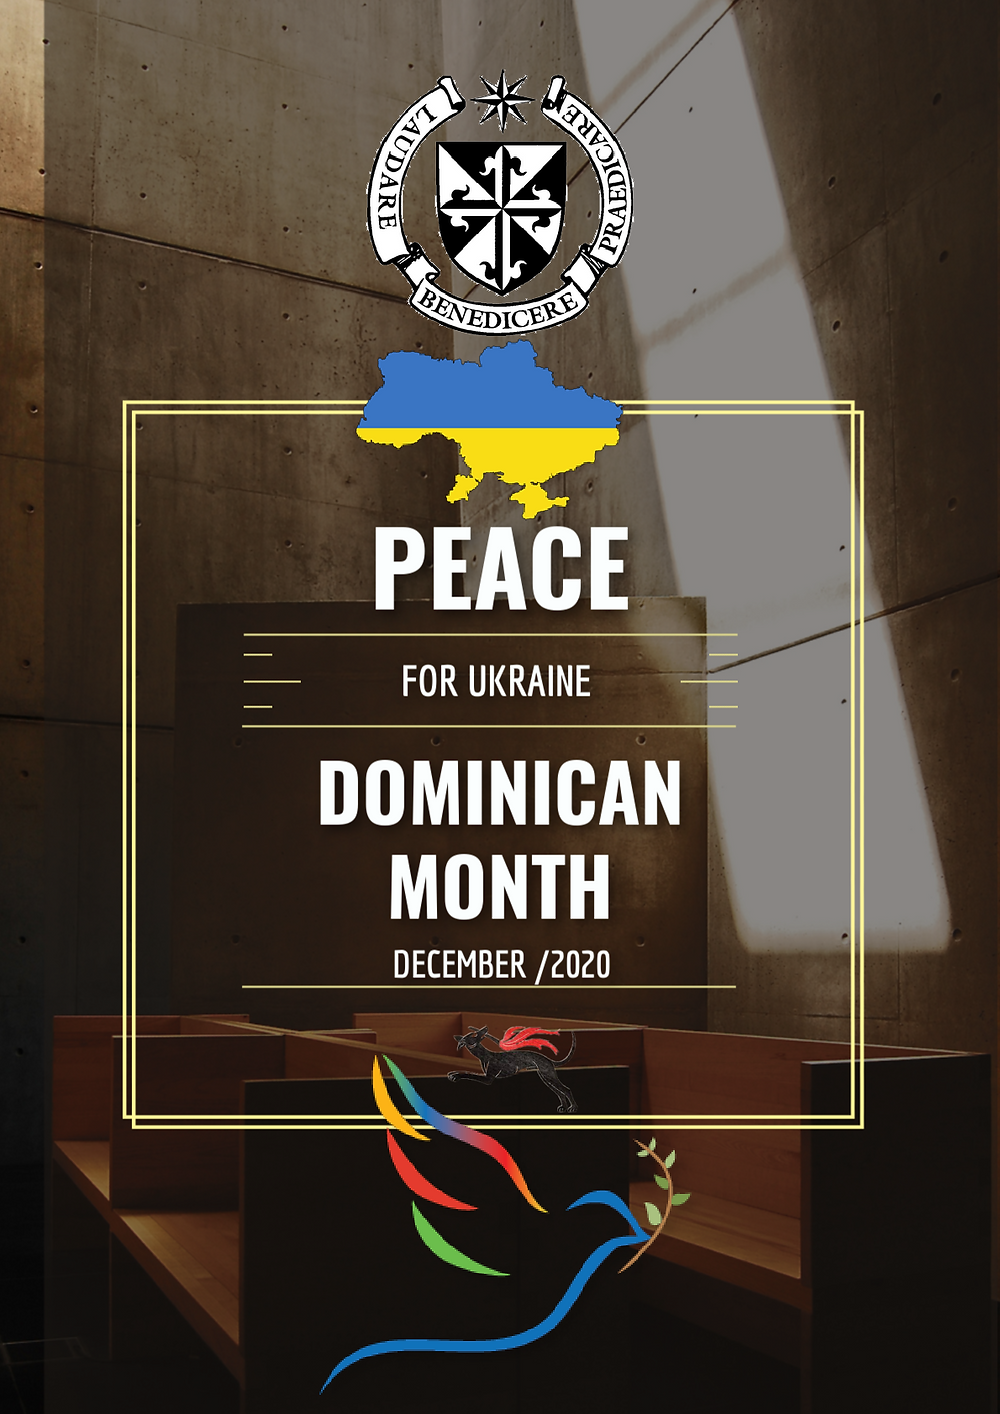 Dominican Month for Peace